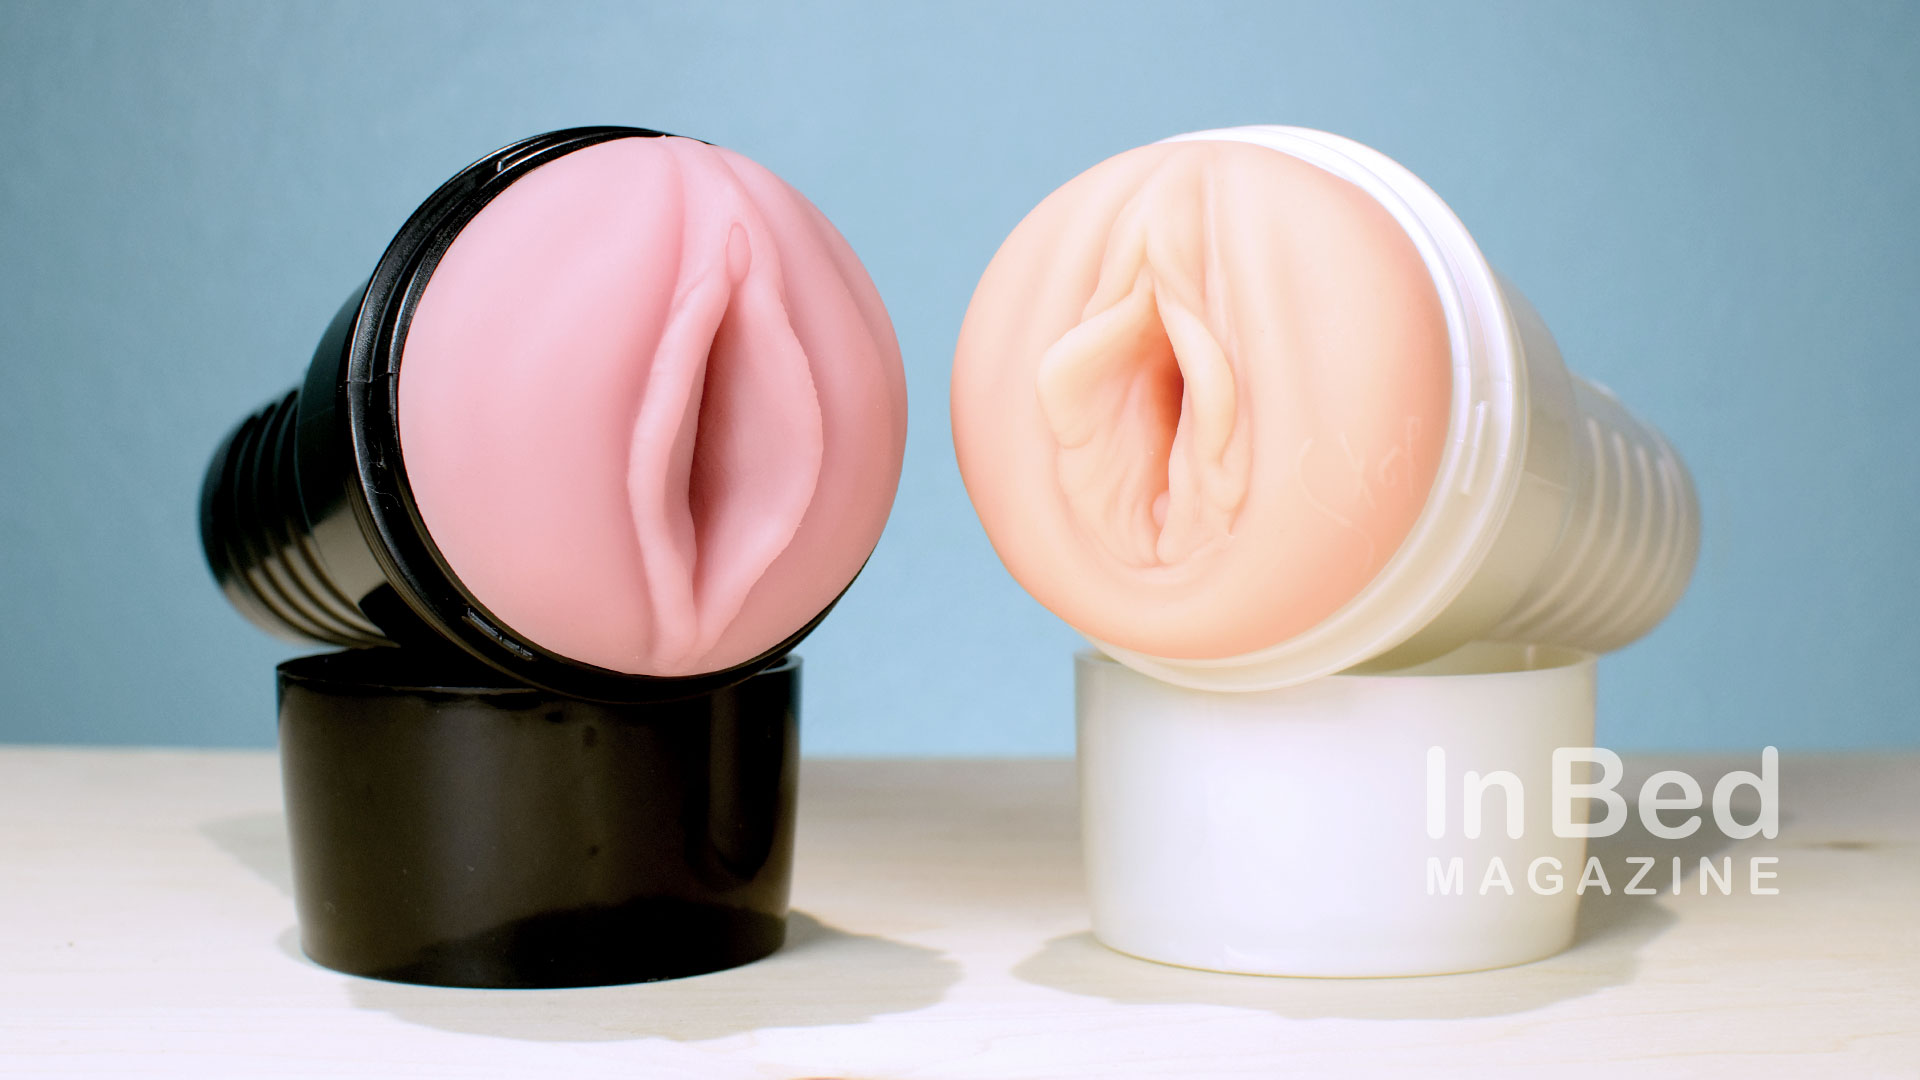 Brand New Fleshlight